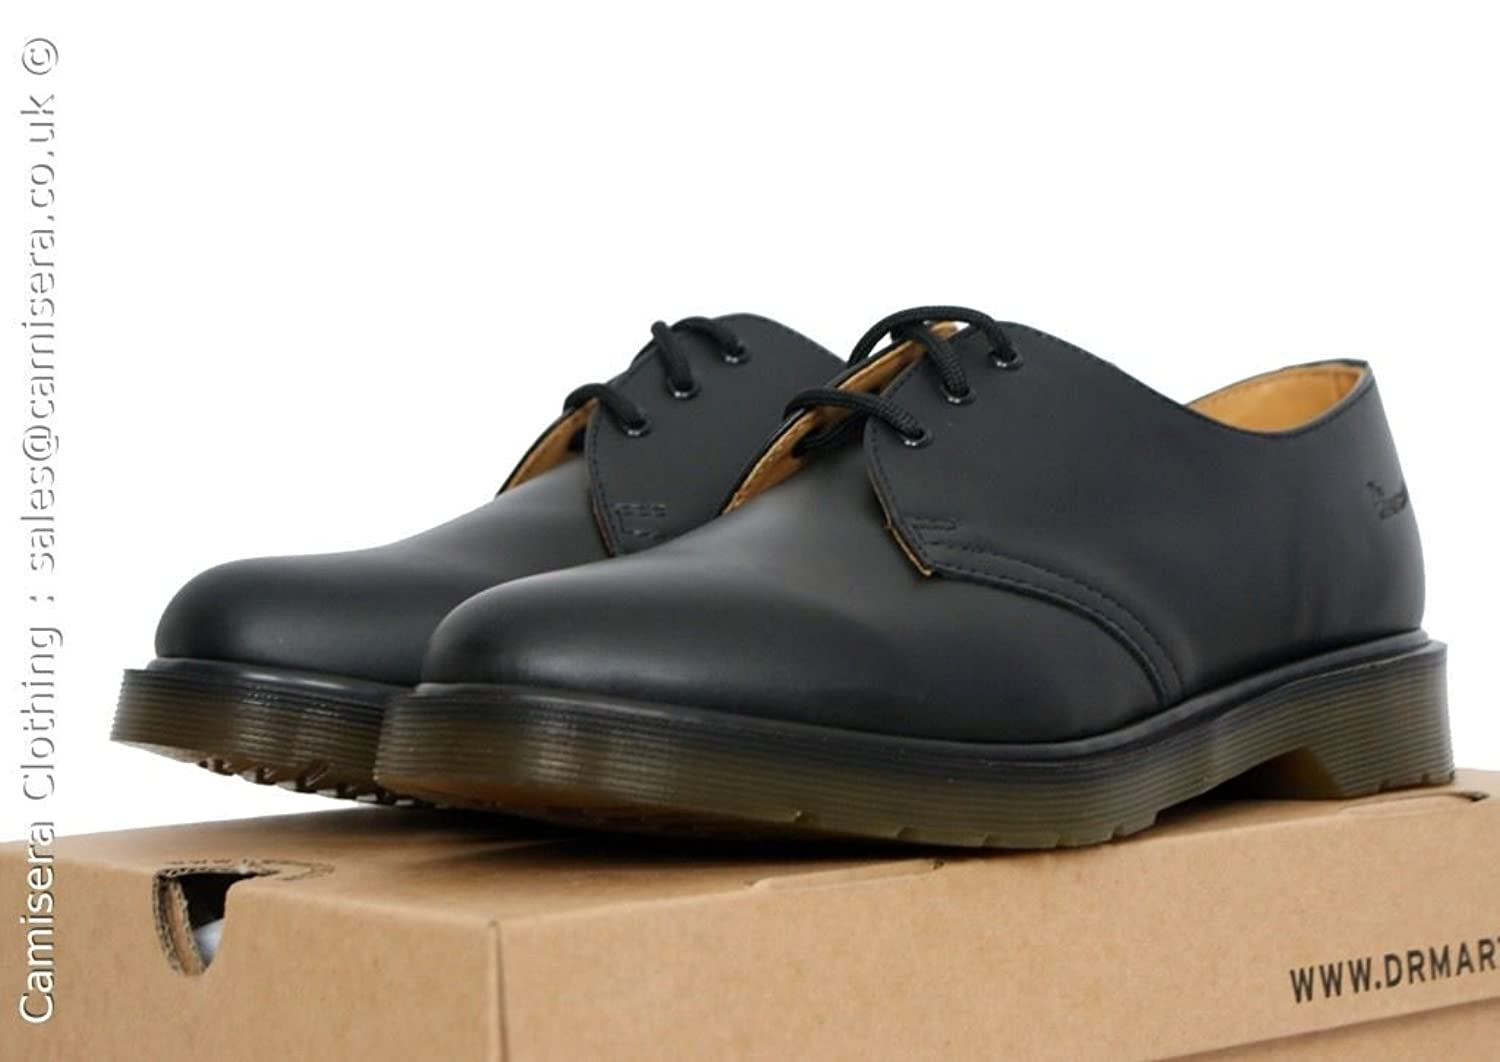 Dr Martens 1461 PW Plain Welt Black Smooth Leather 3 Eyelet Air Wair Shoes:  Amazon.co.uk: Shoes & Bags